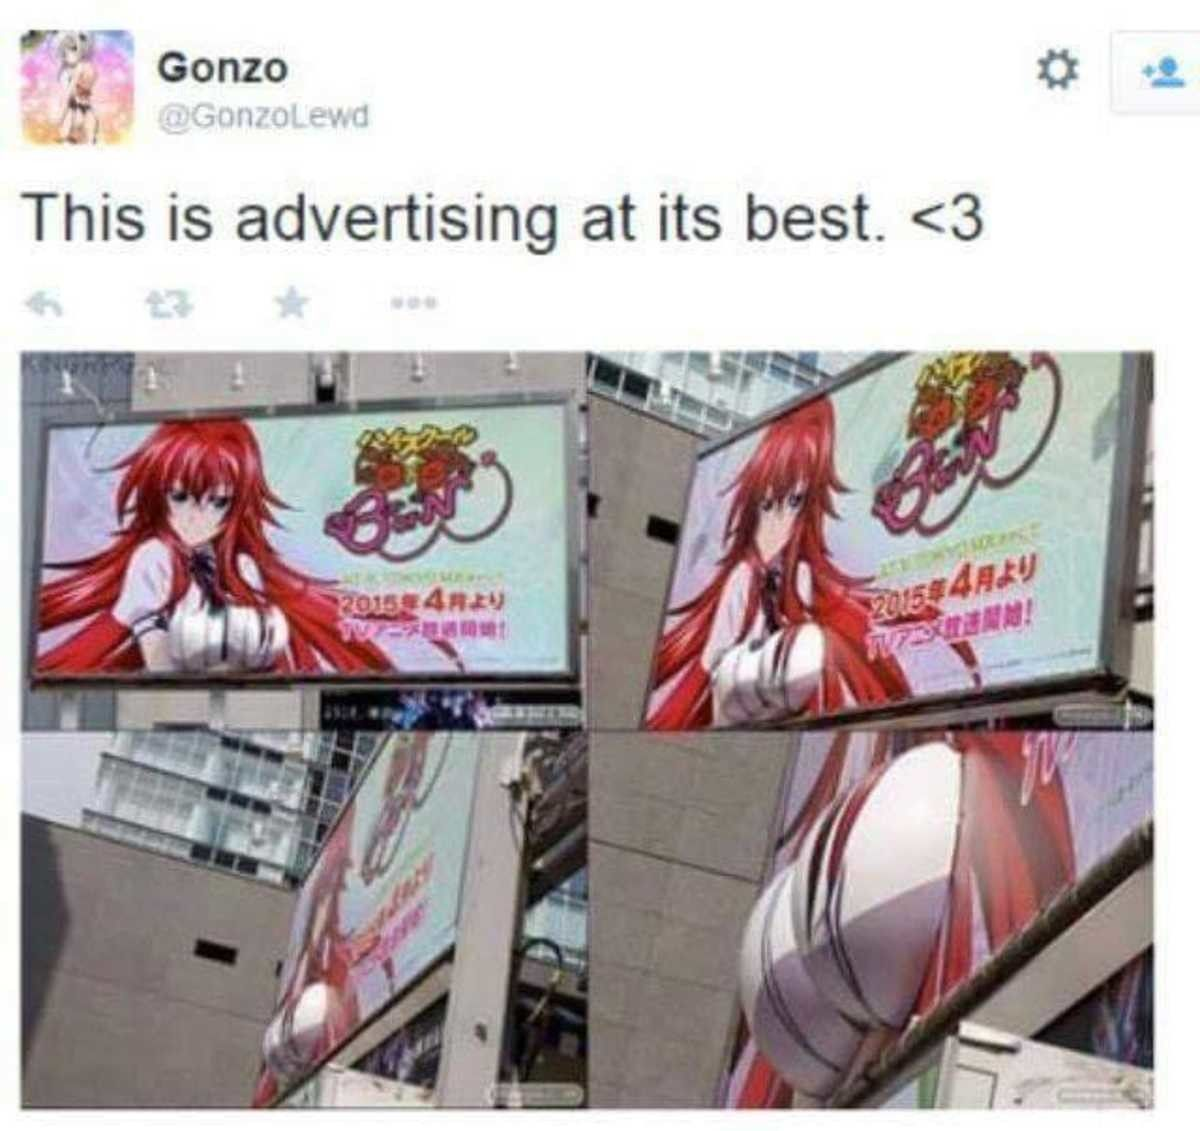 Japanese ads can really pop out at you